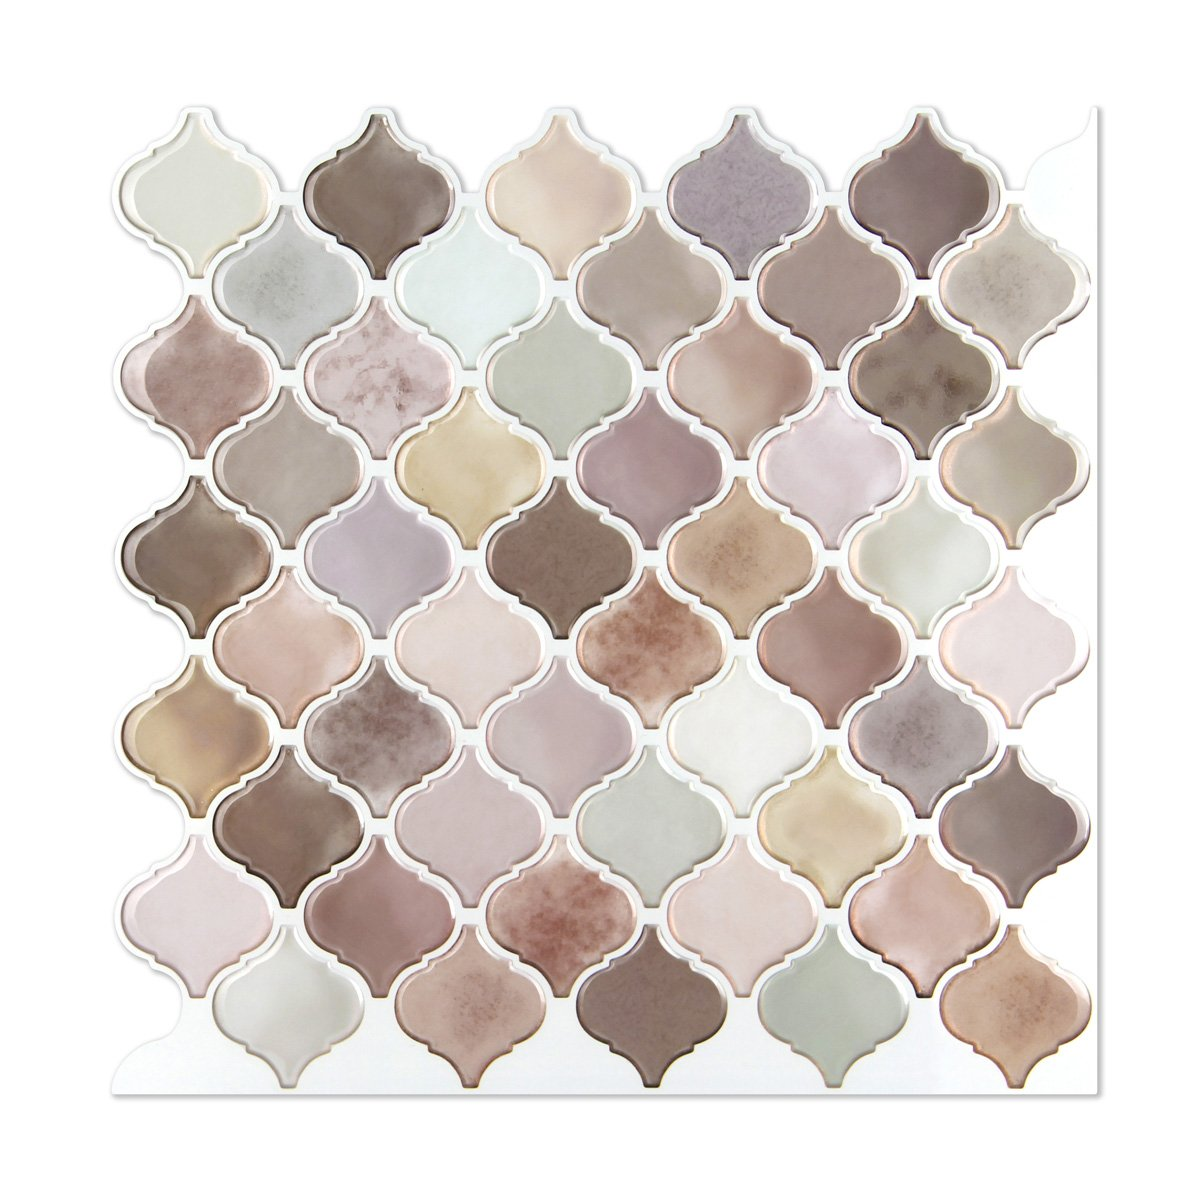 Arabesque Mosaic Wall Stick Tiles Peel and Stick Self-Adhesive DIY Backsplash Stick-on Vinyl Wall Tiles for Kitchen and Bathroom 10'' X 10'' Each, 4 Sheets Pack (Pink & Gray Mixed)